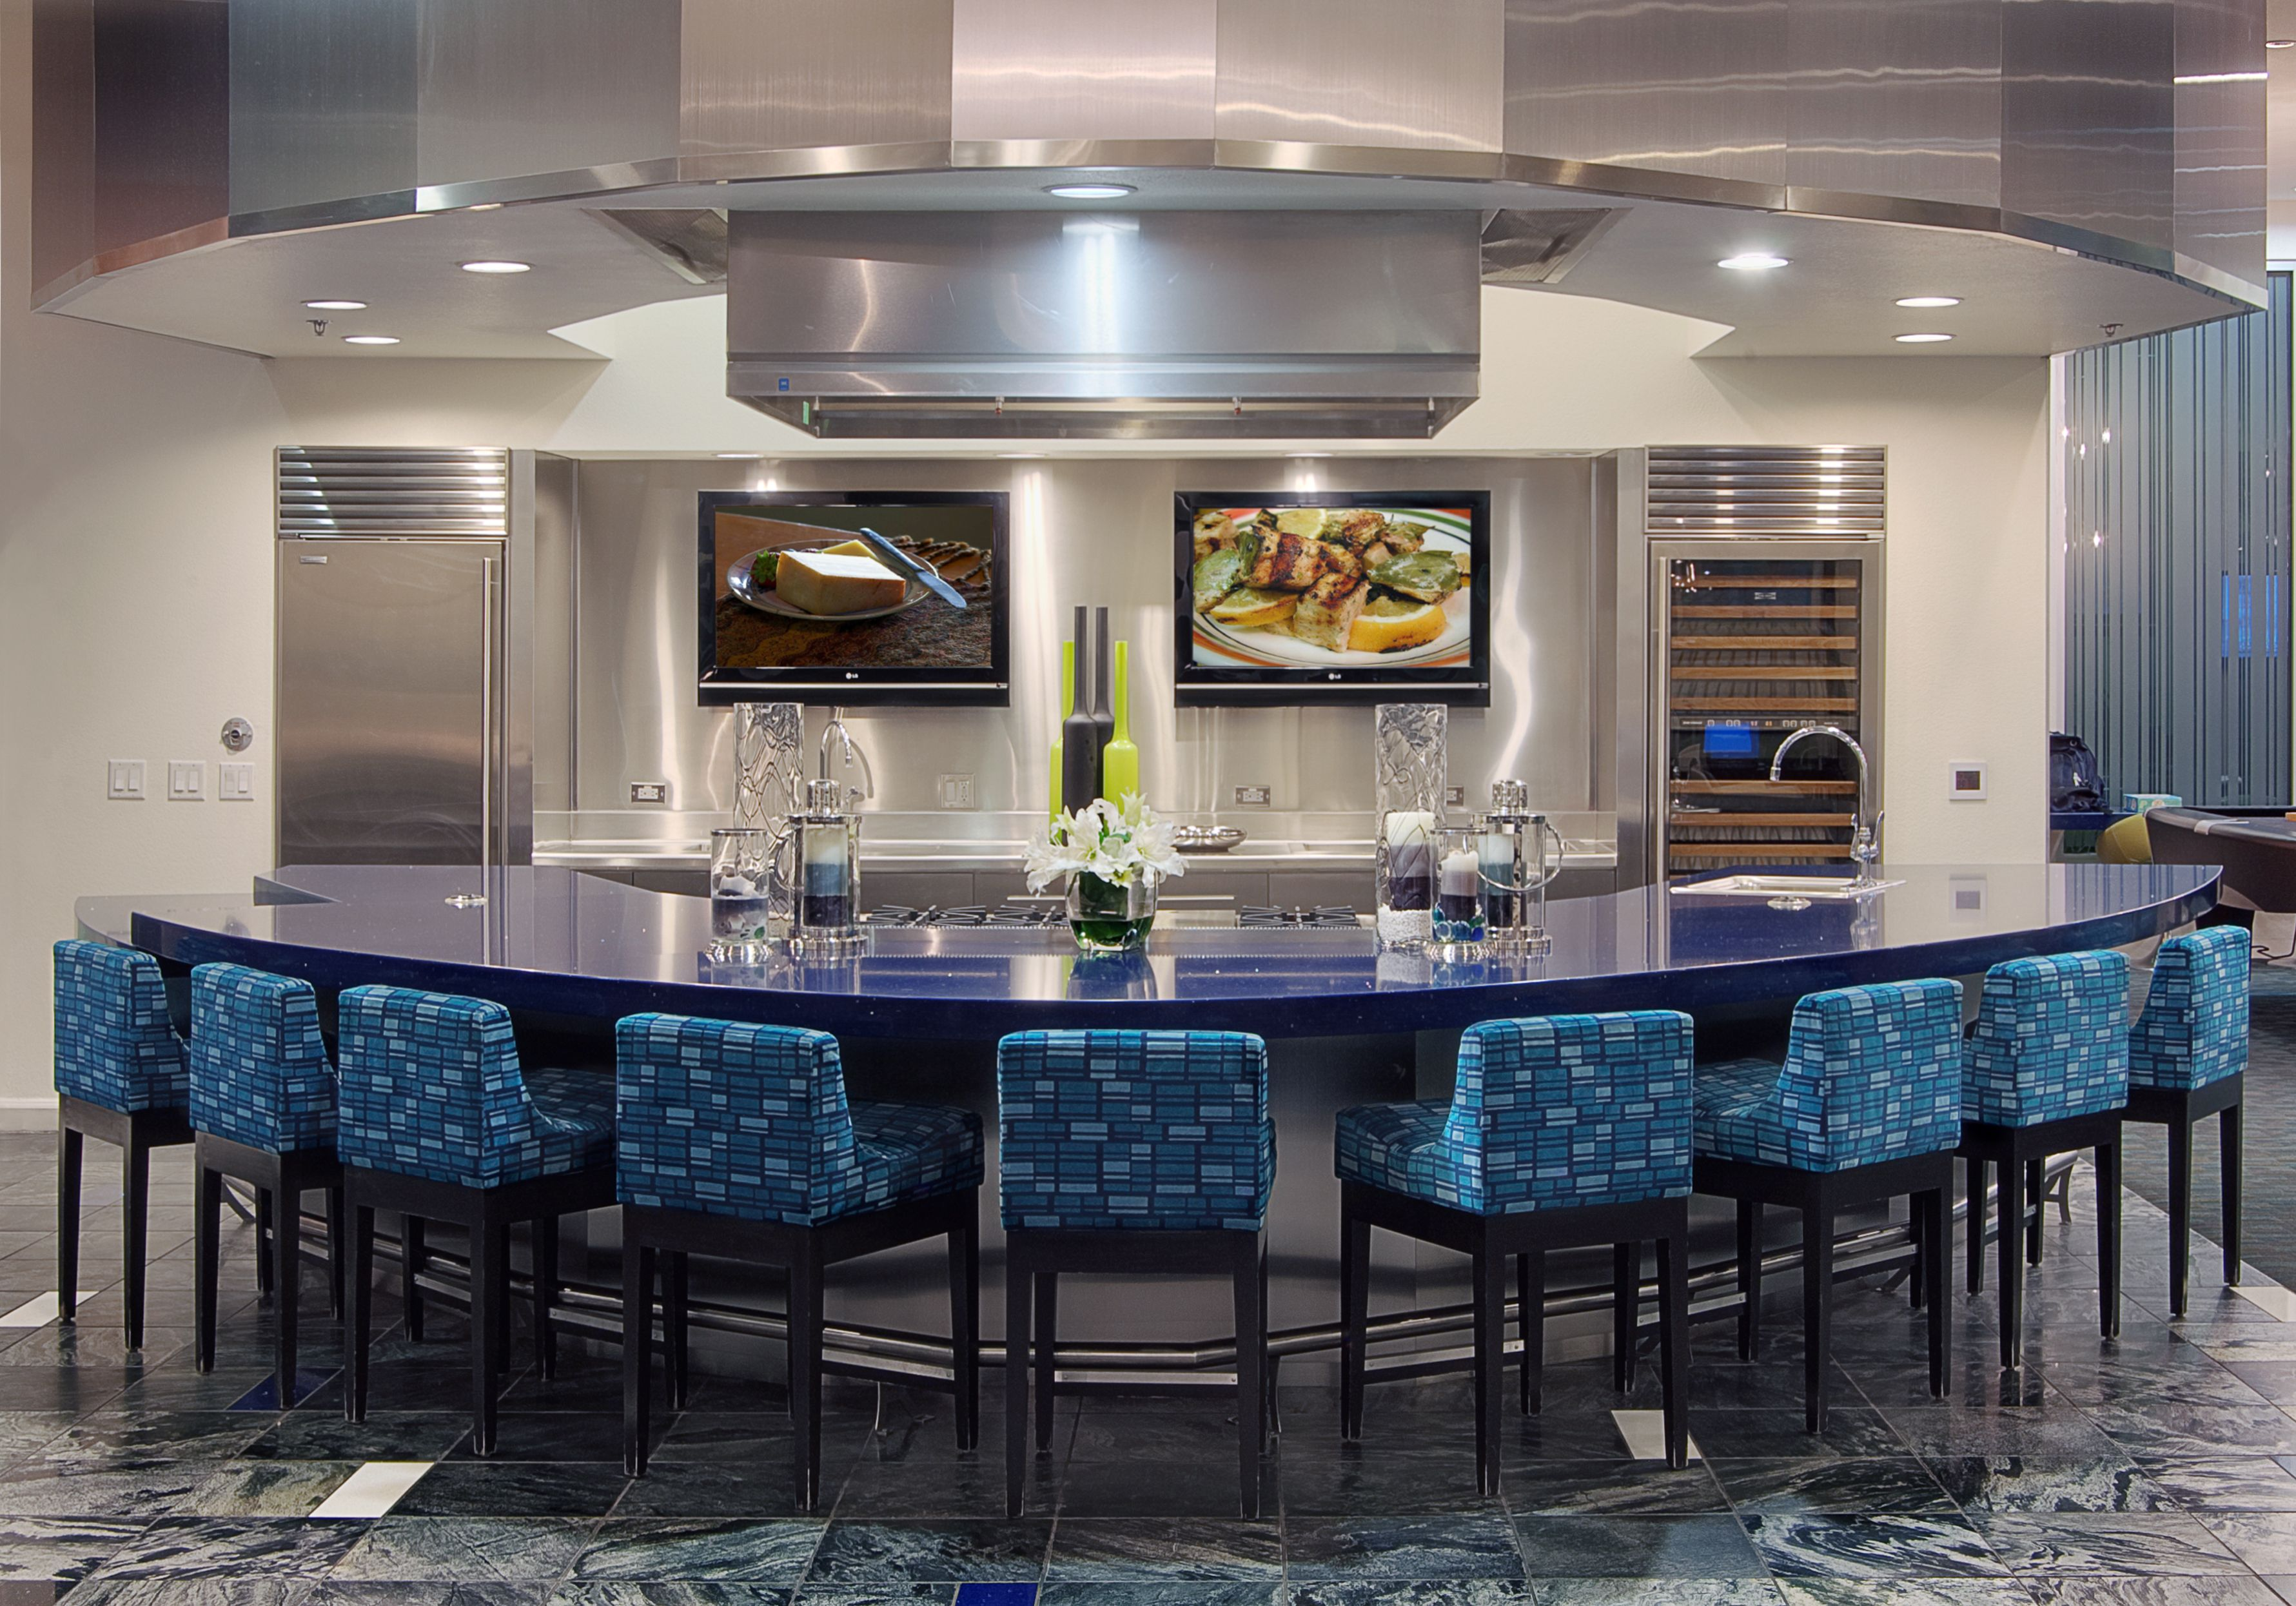 Gourmet Demonstration Kitchen - Rent this out for you next party ...